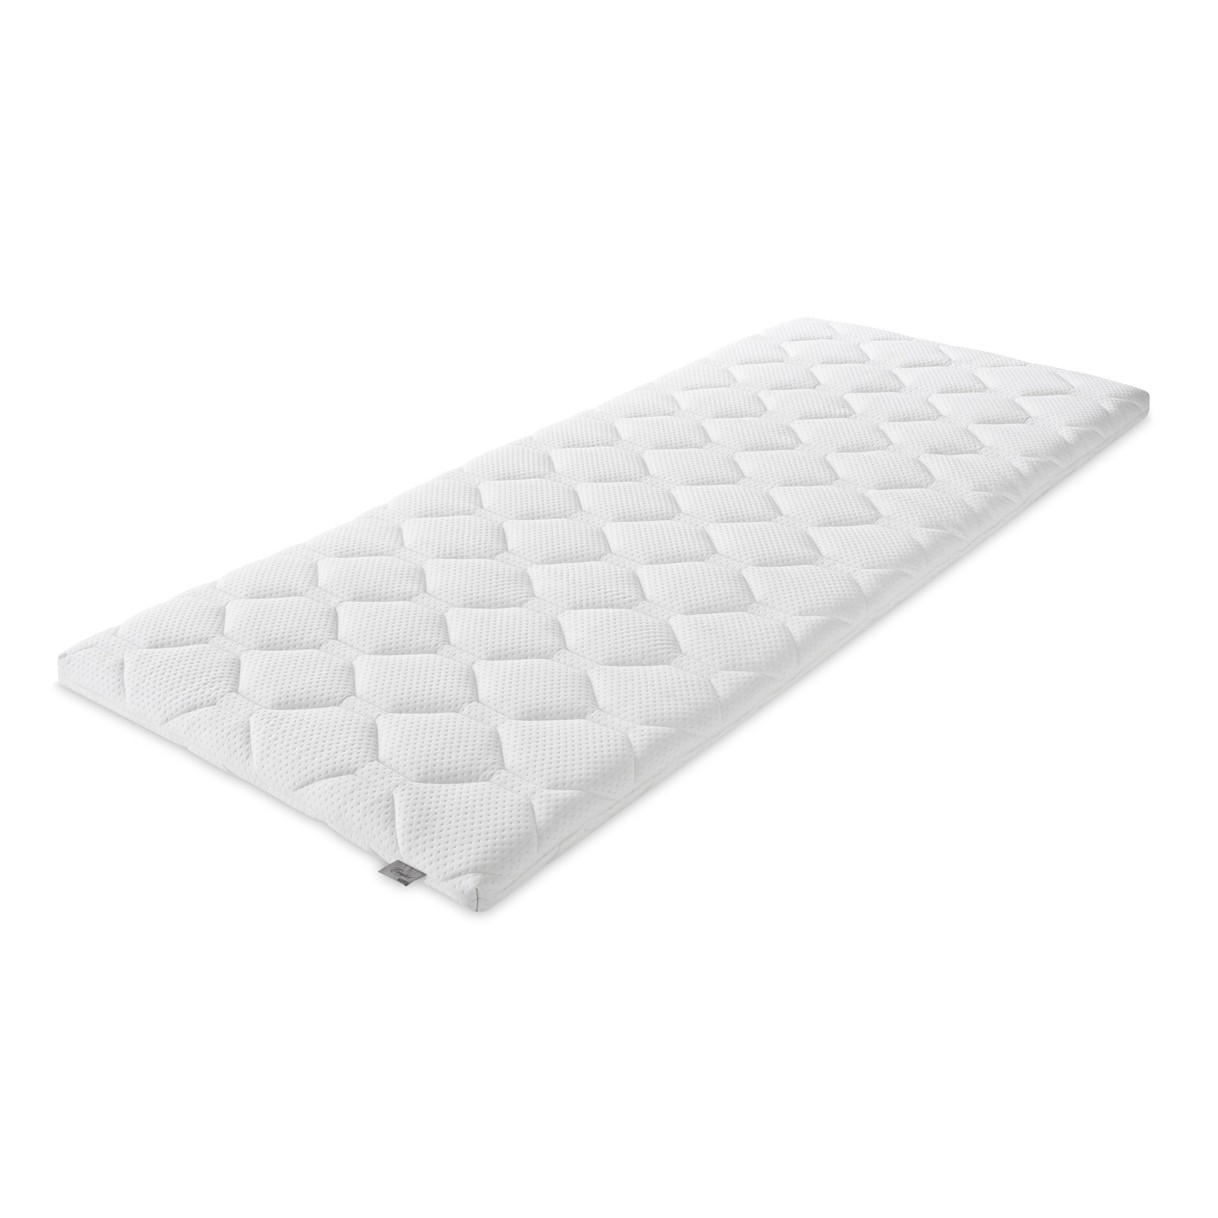 Boxspring Topper Comfort